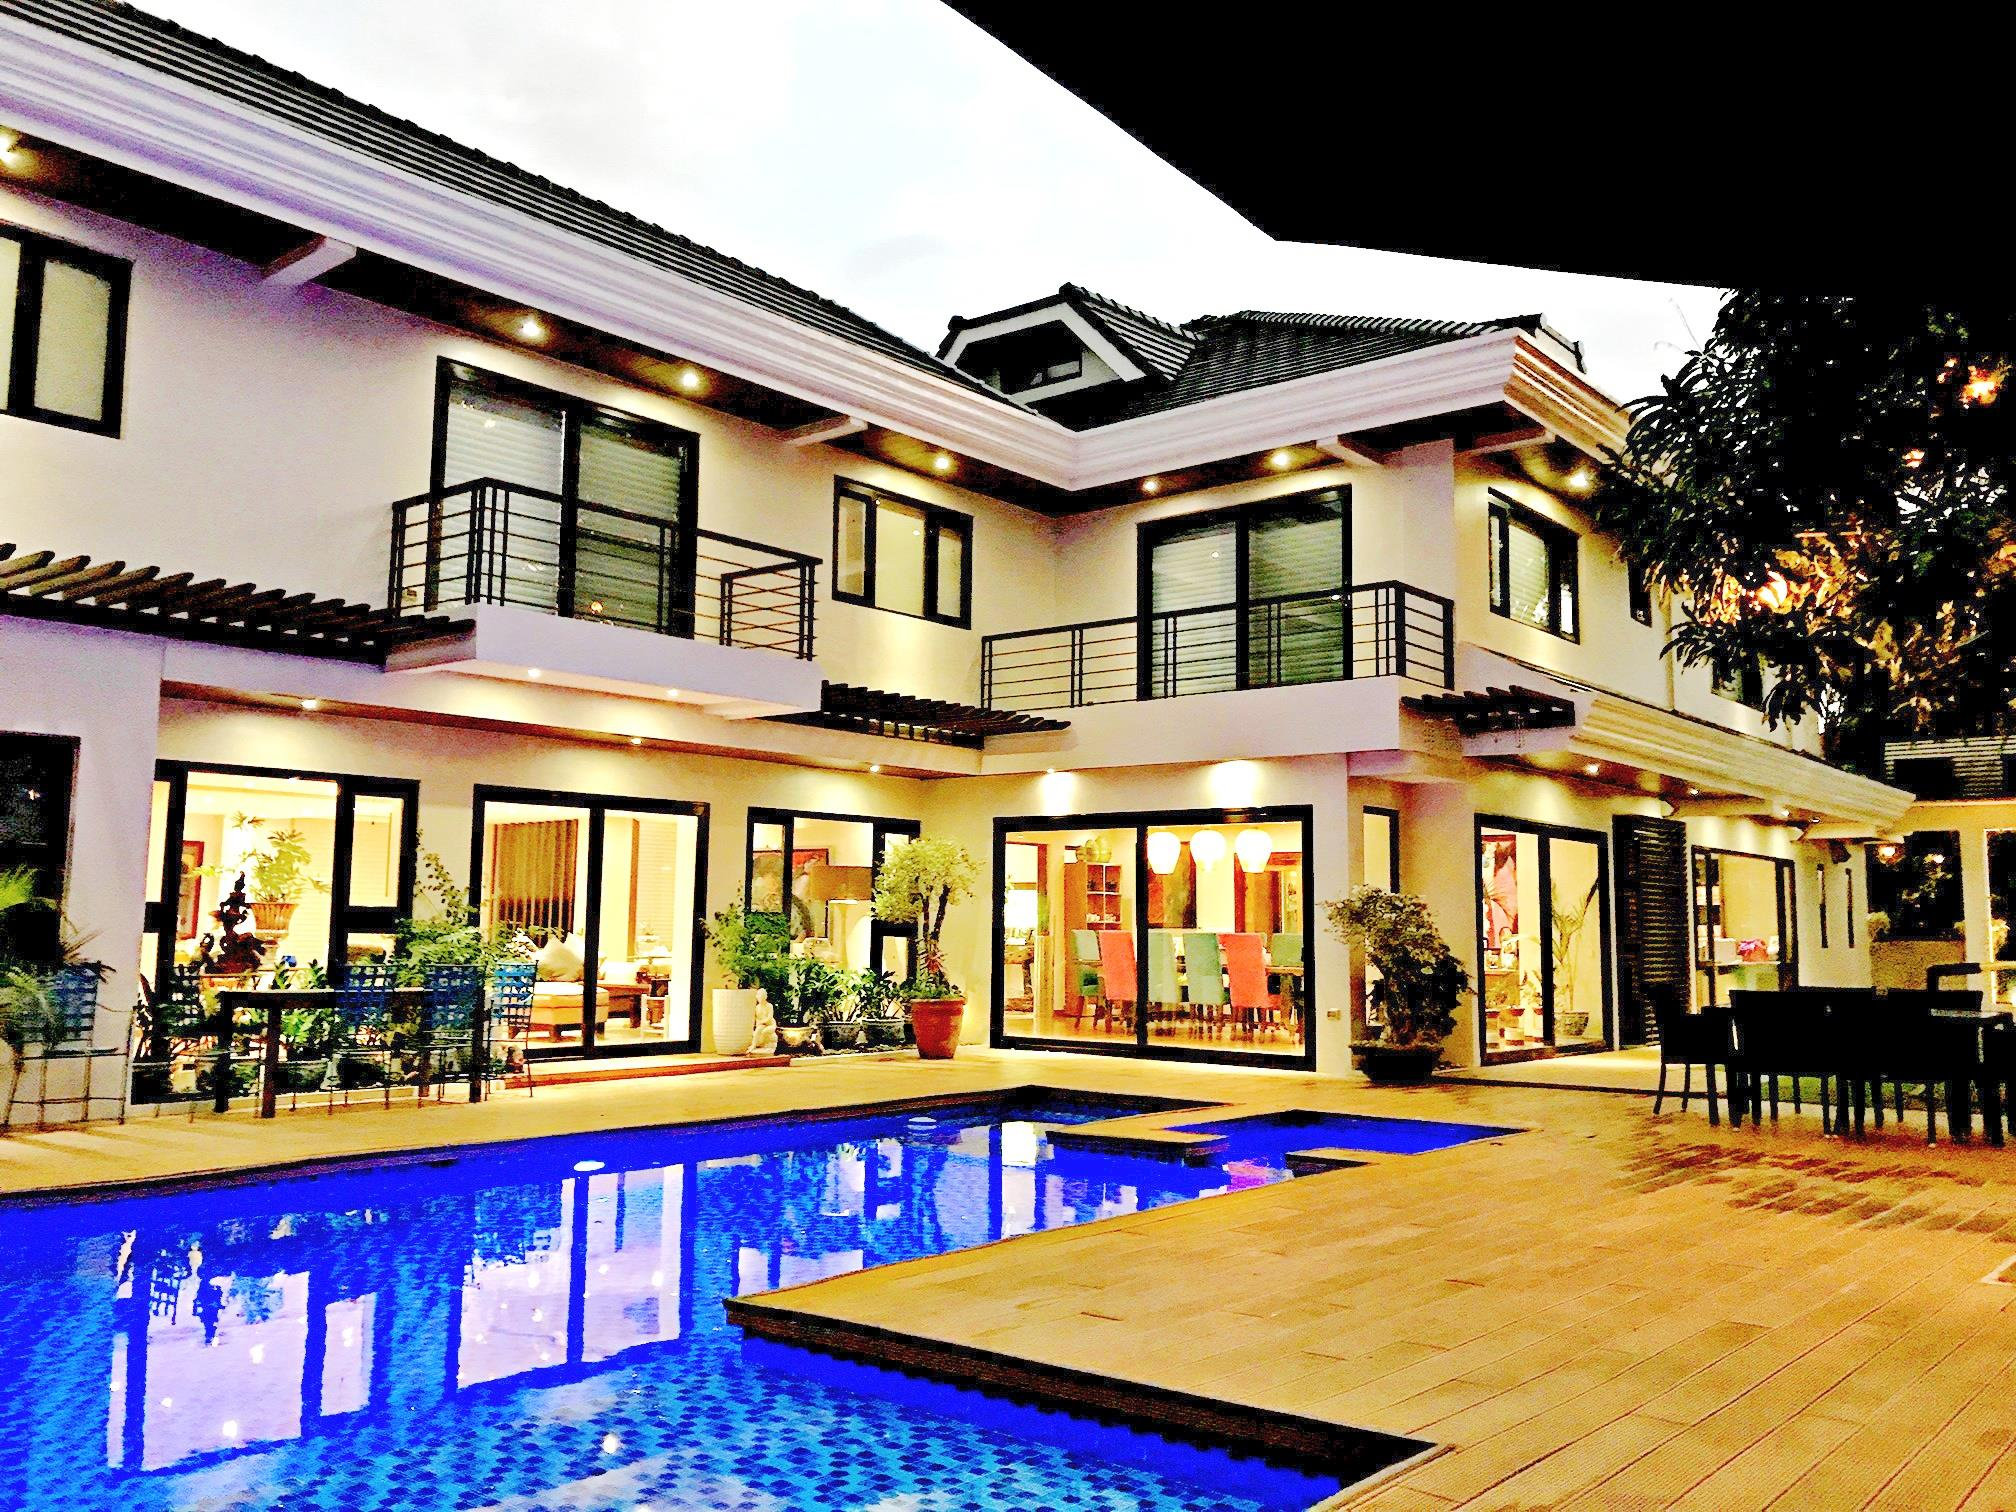 Philippine Real Estate Choices by CHONA ESGUERRA,, - Ayala